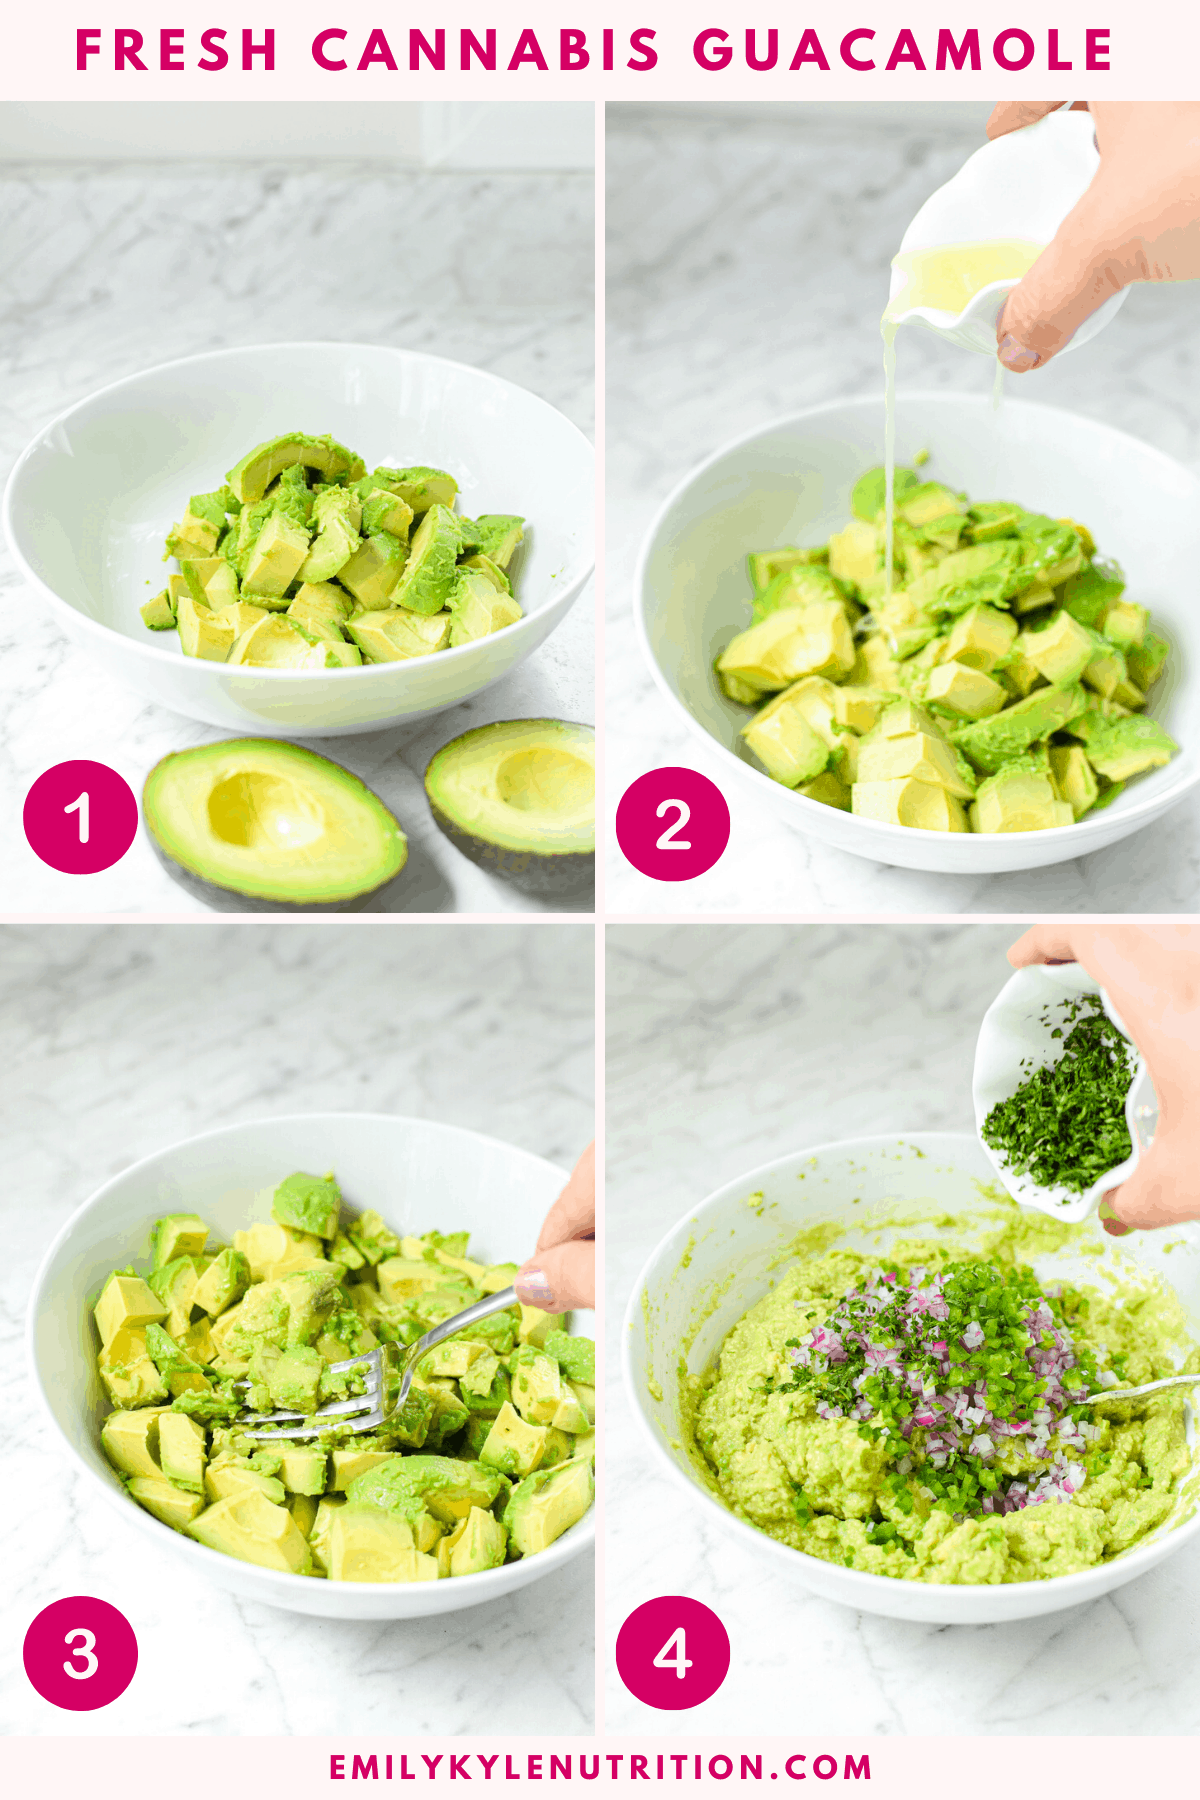 Four images in a collage put together to show you how to make cannabis infused guacamole